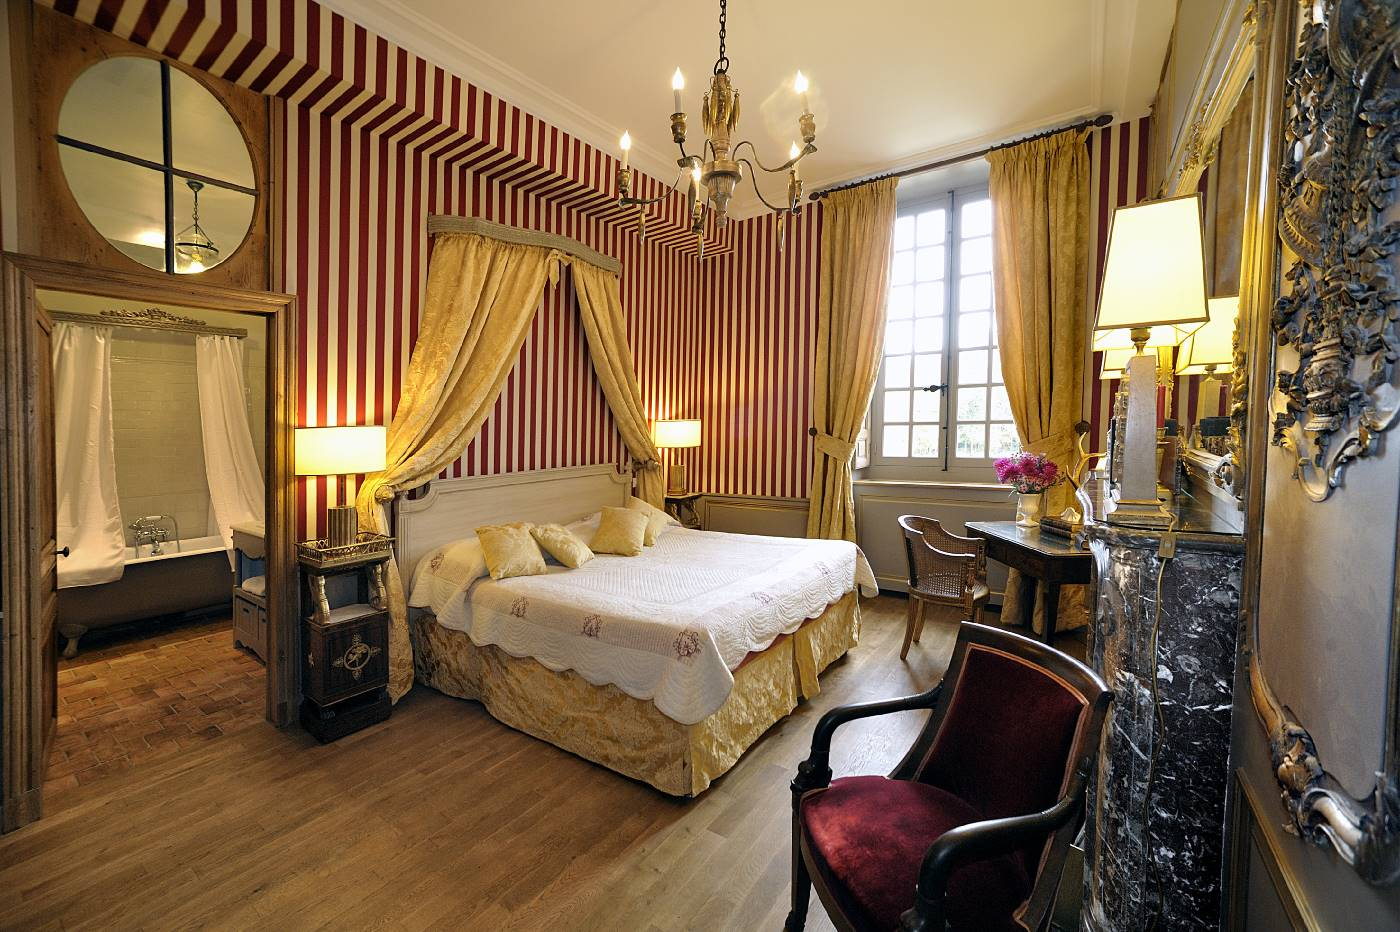 prestige room in a castle